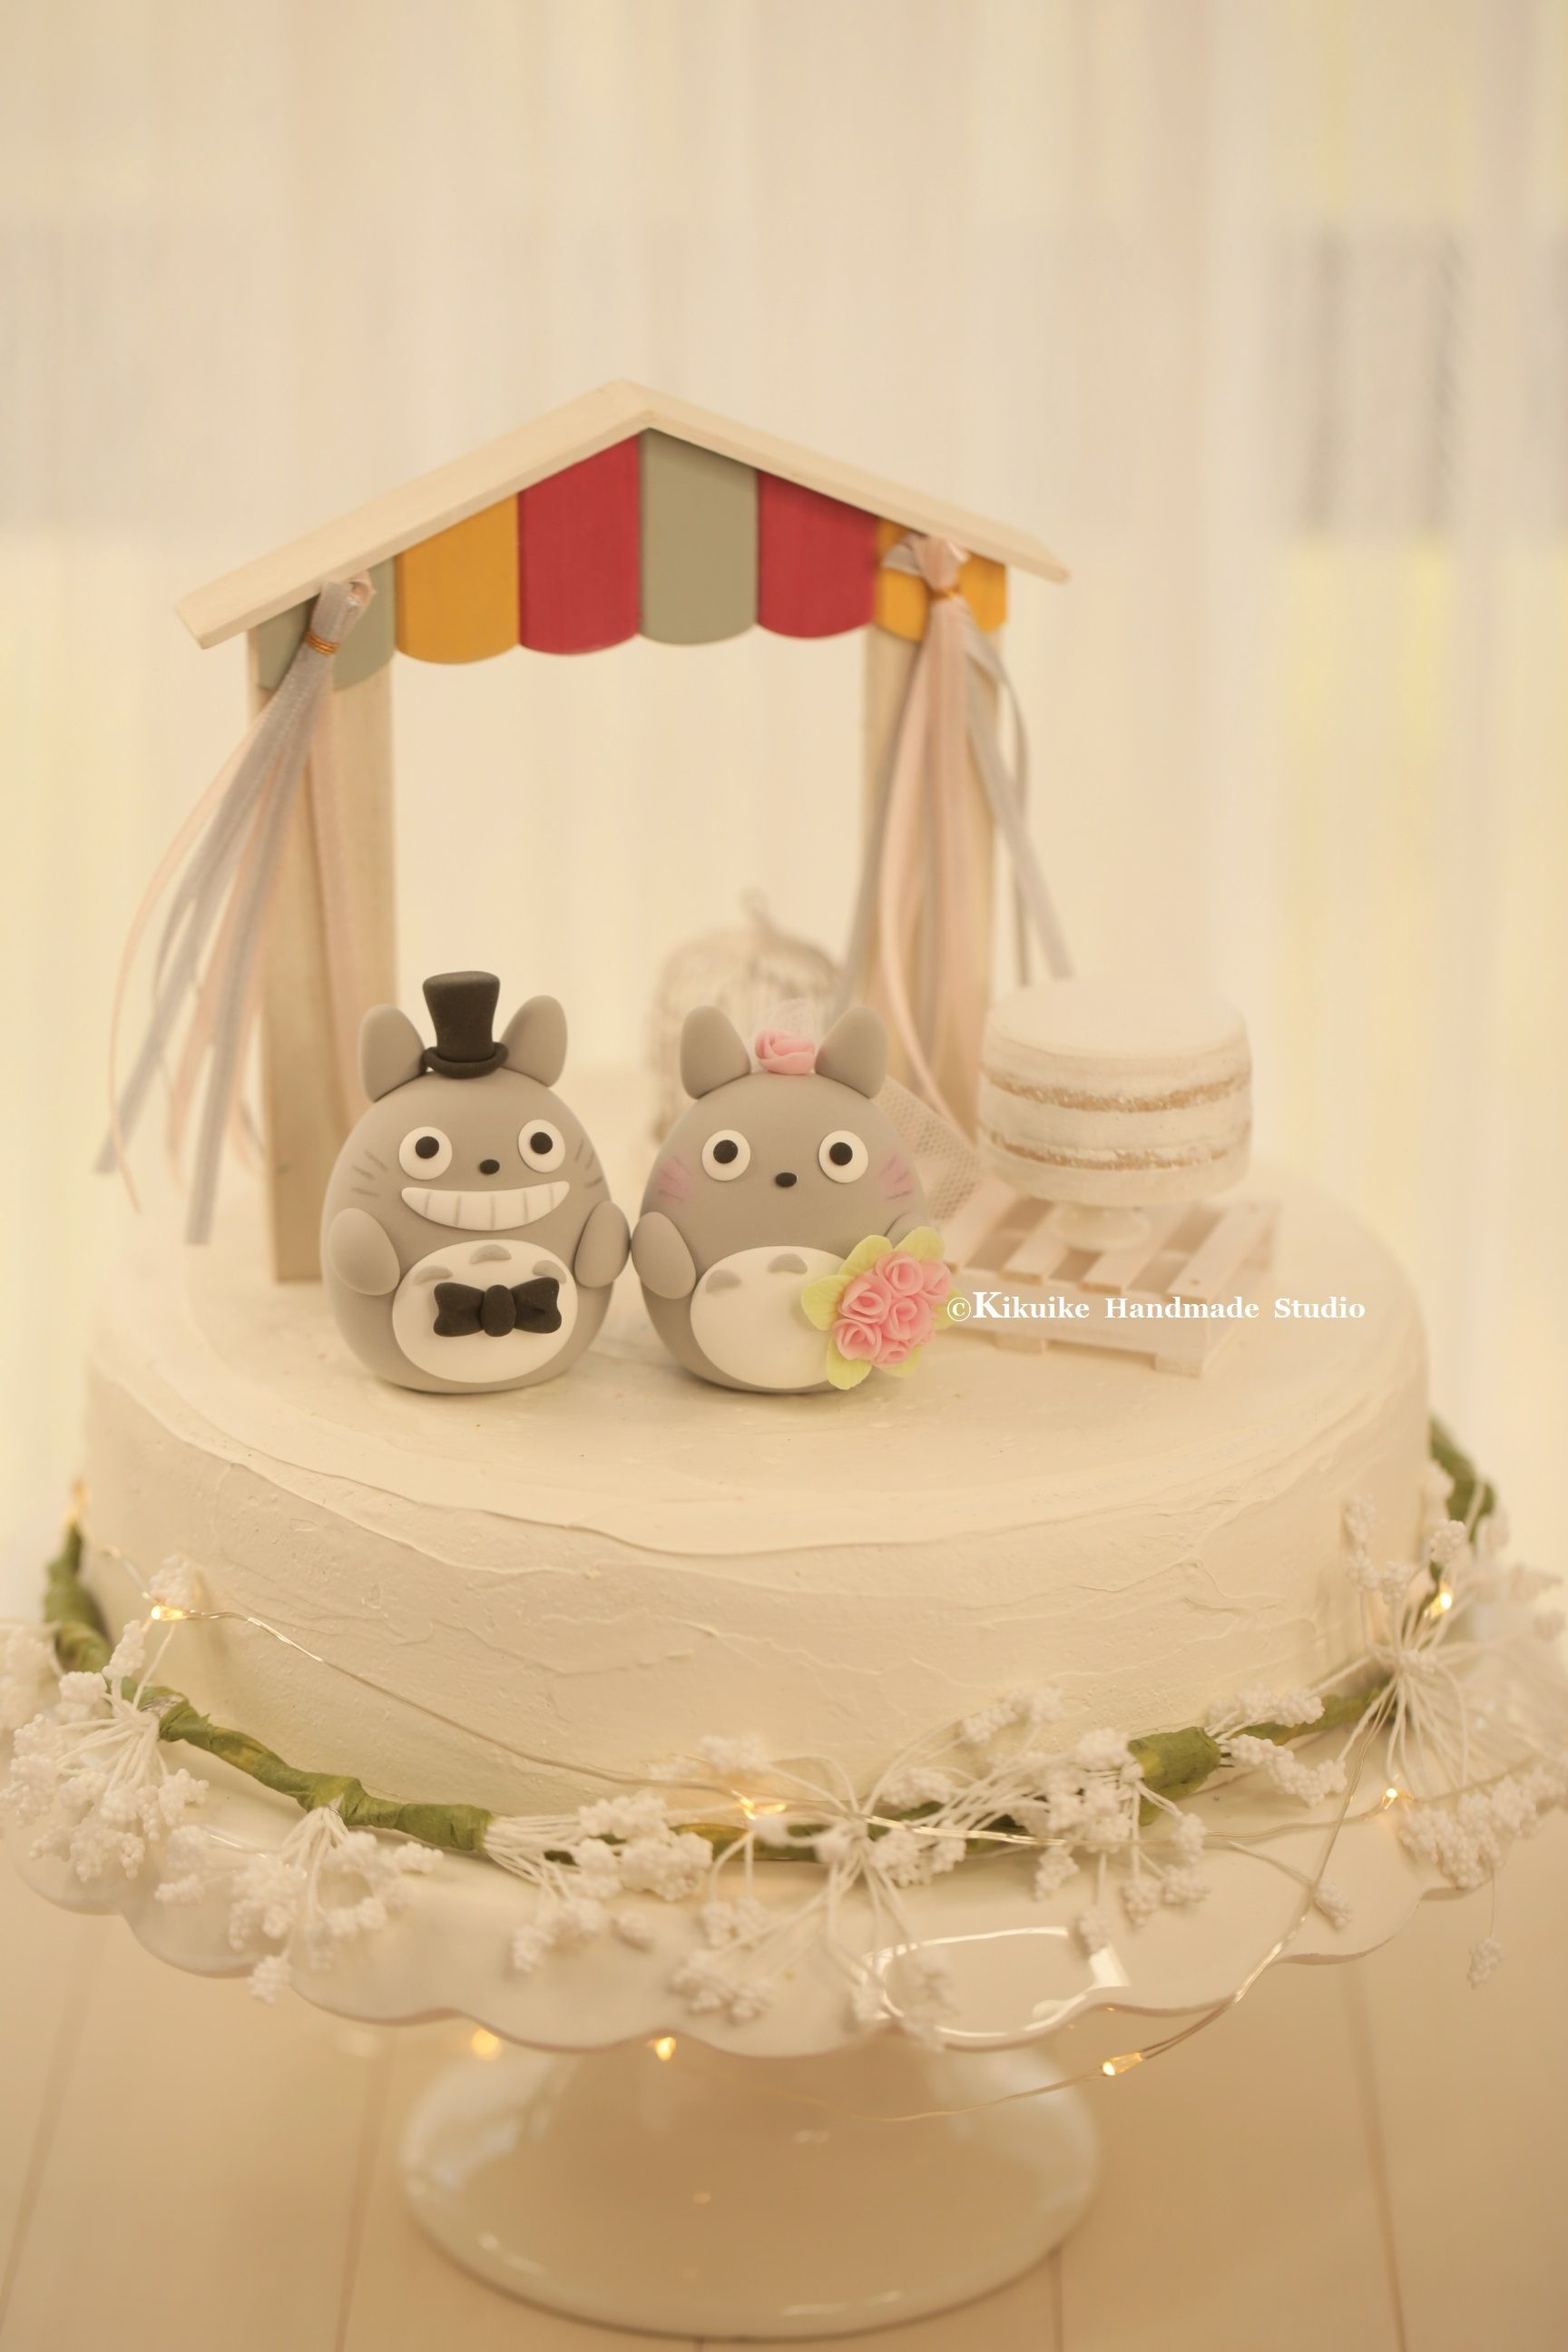 Love totoro トトロ bride and groom with the handmade wooden outdoor